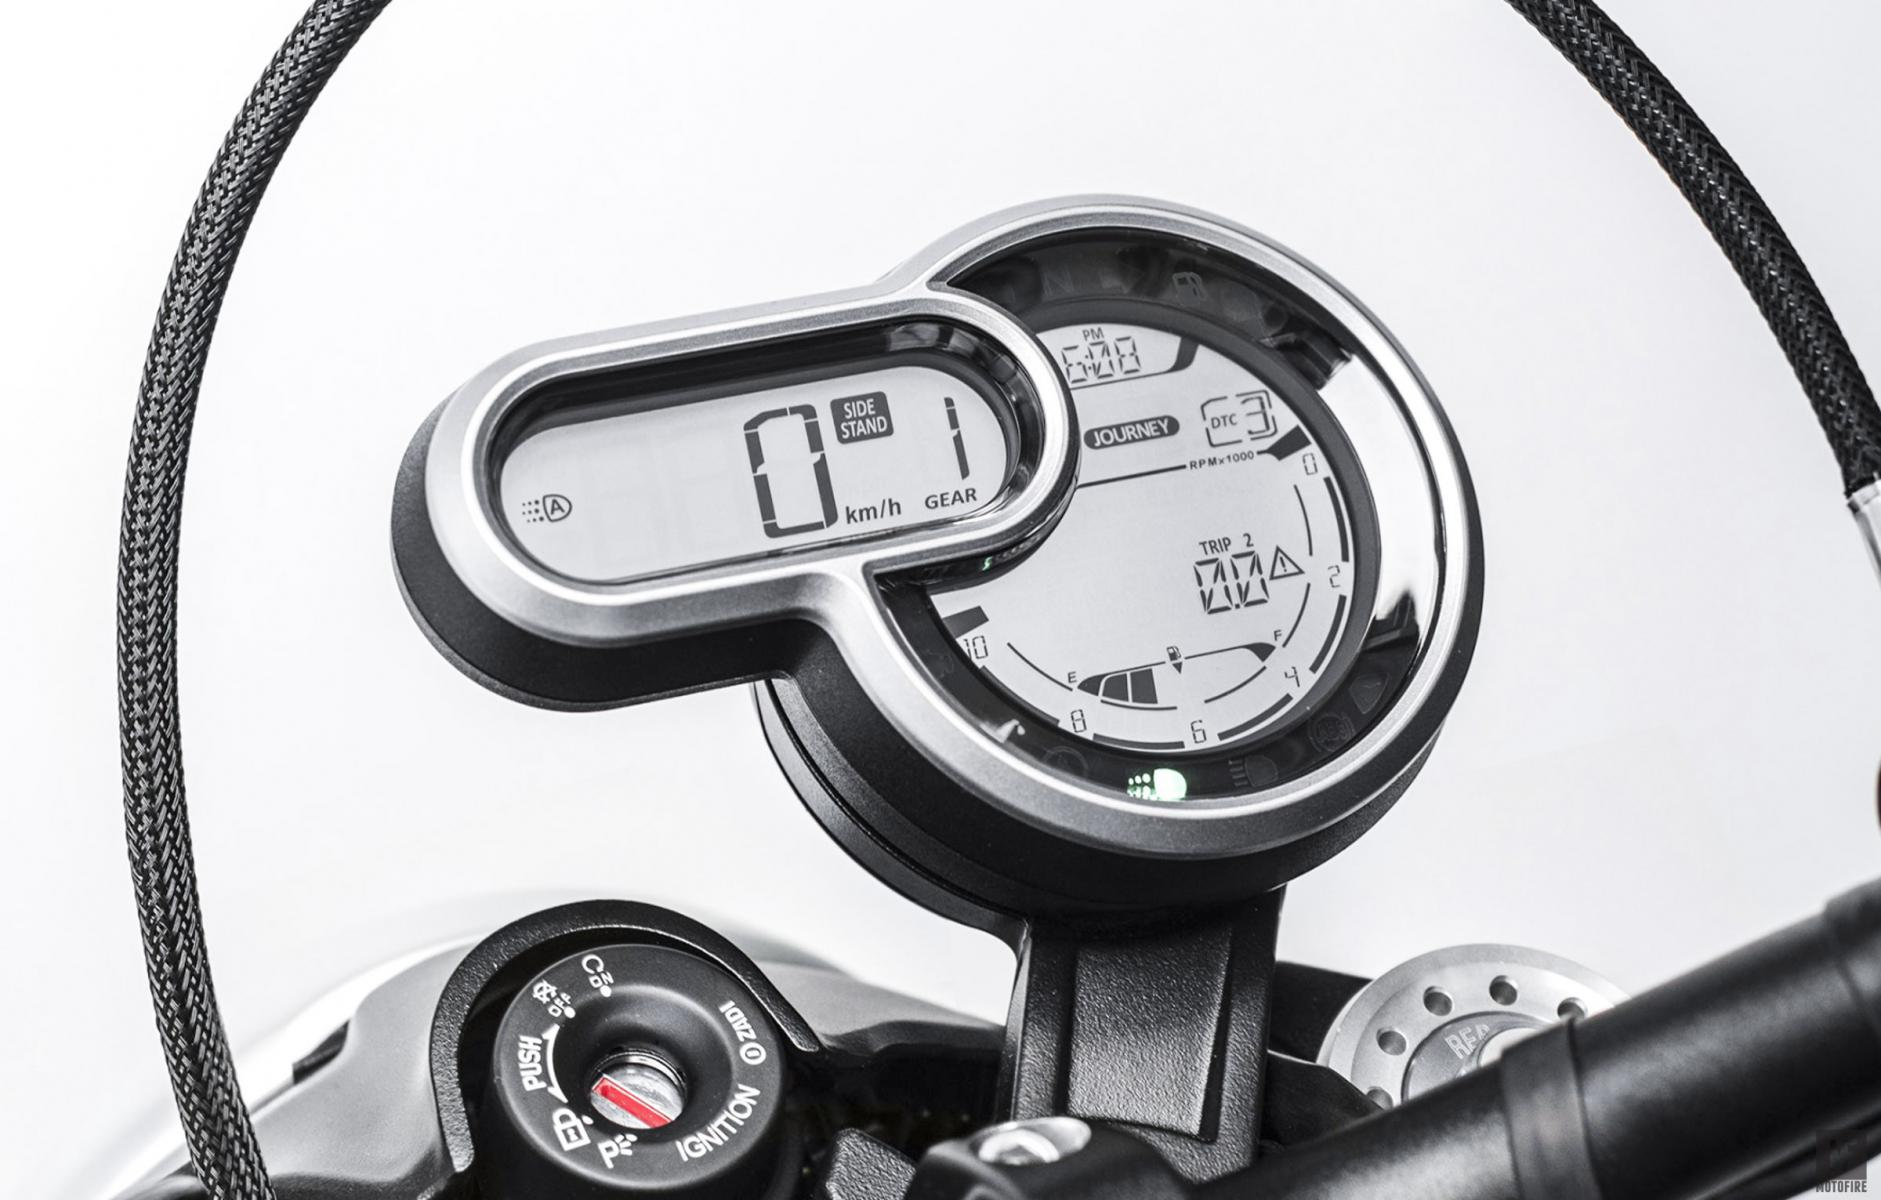 New LCD instrument with fuel and gear indicator - Ducati